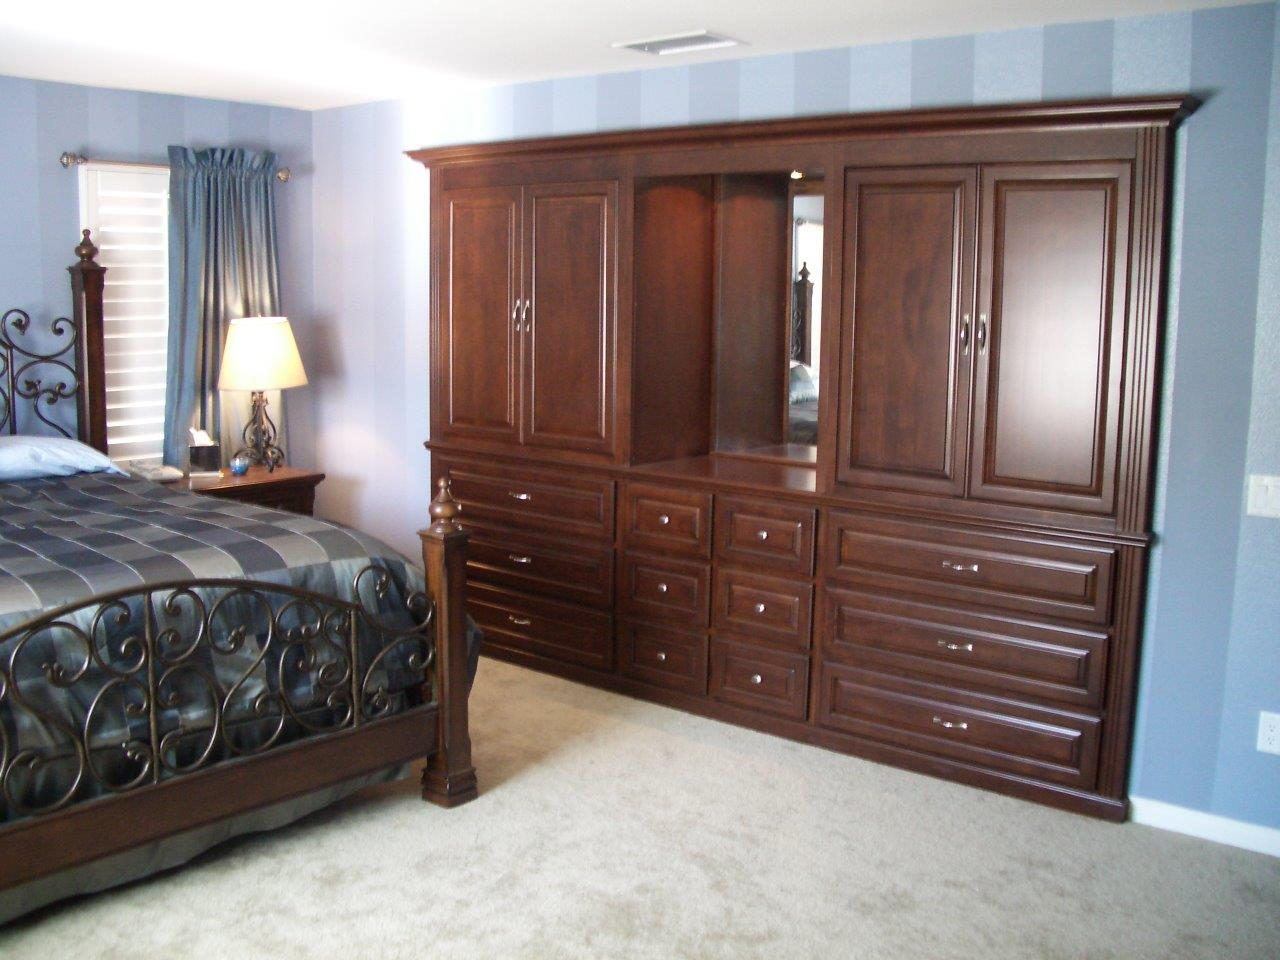 Murphy Beds and Bedroom Cabinets - Woodwork Creations